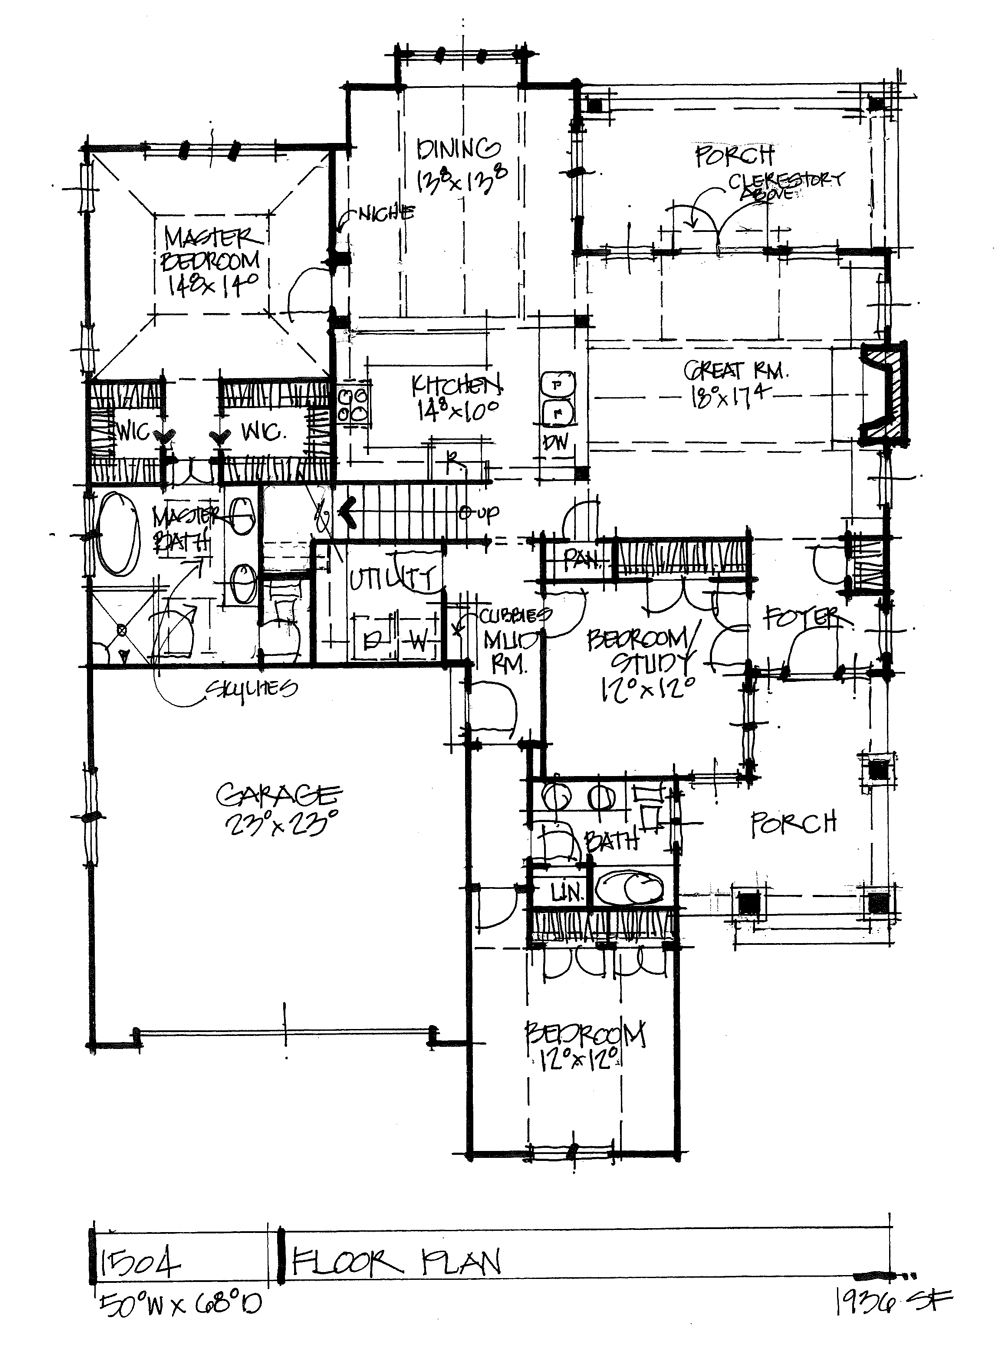 House Plan 1504 Compact Cottage Don Gardner House Plans House Plans How To Plan Floor Plans